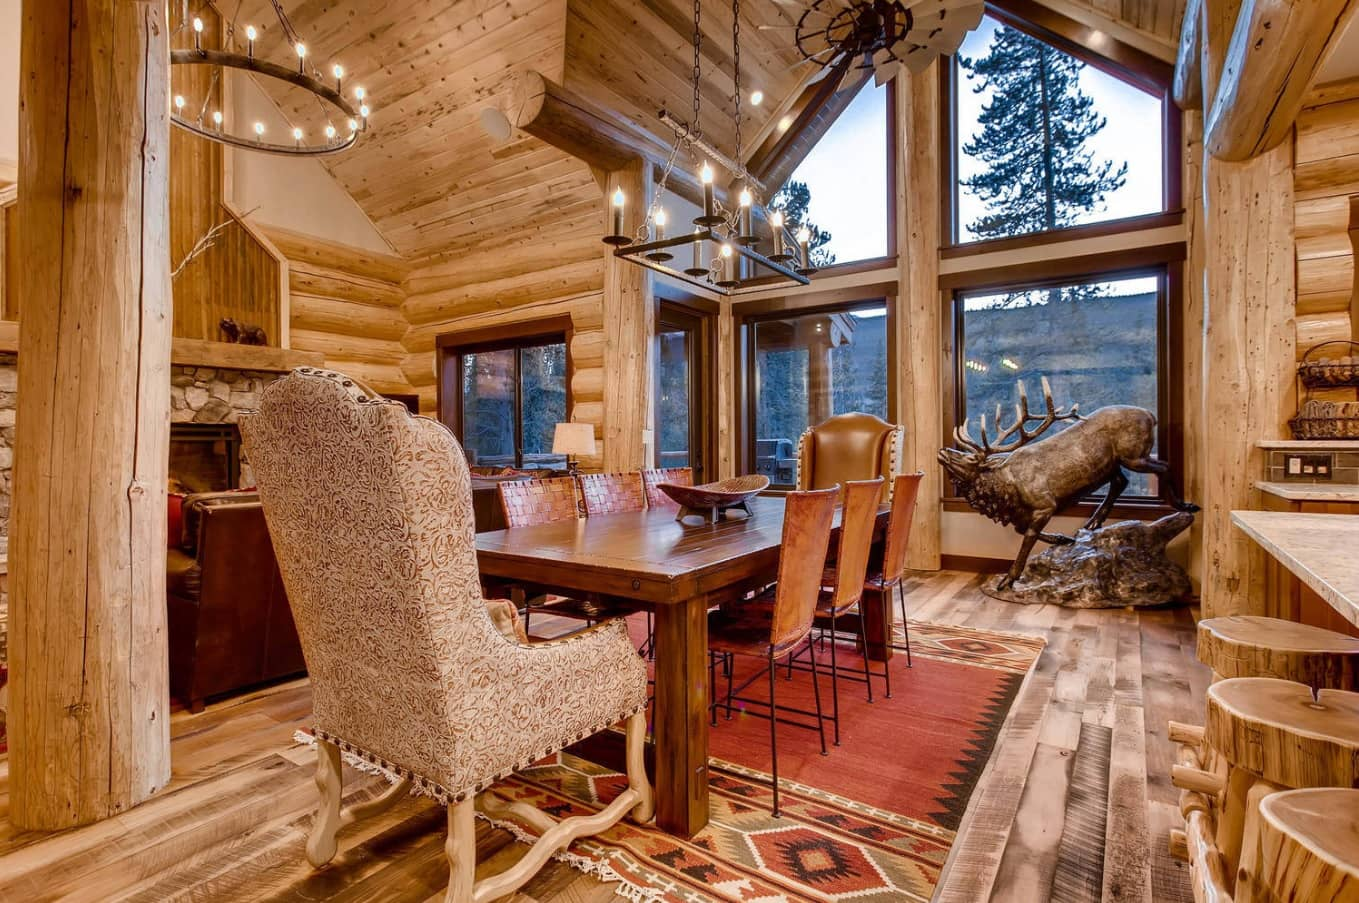 How to Turn Your Home Into a Dream Log Cabin. Open Ceiling beams and the grandeur scale of the interior